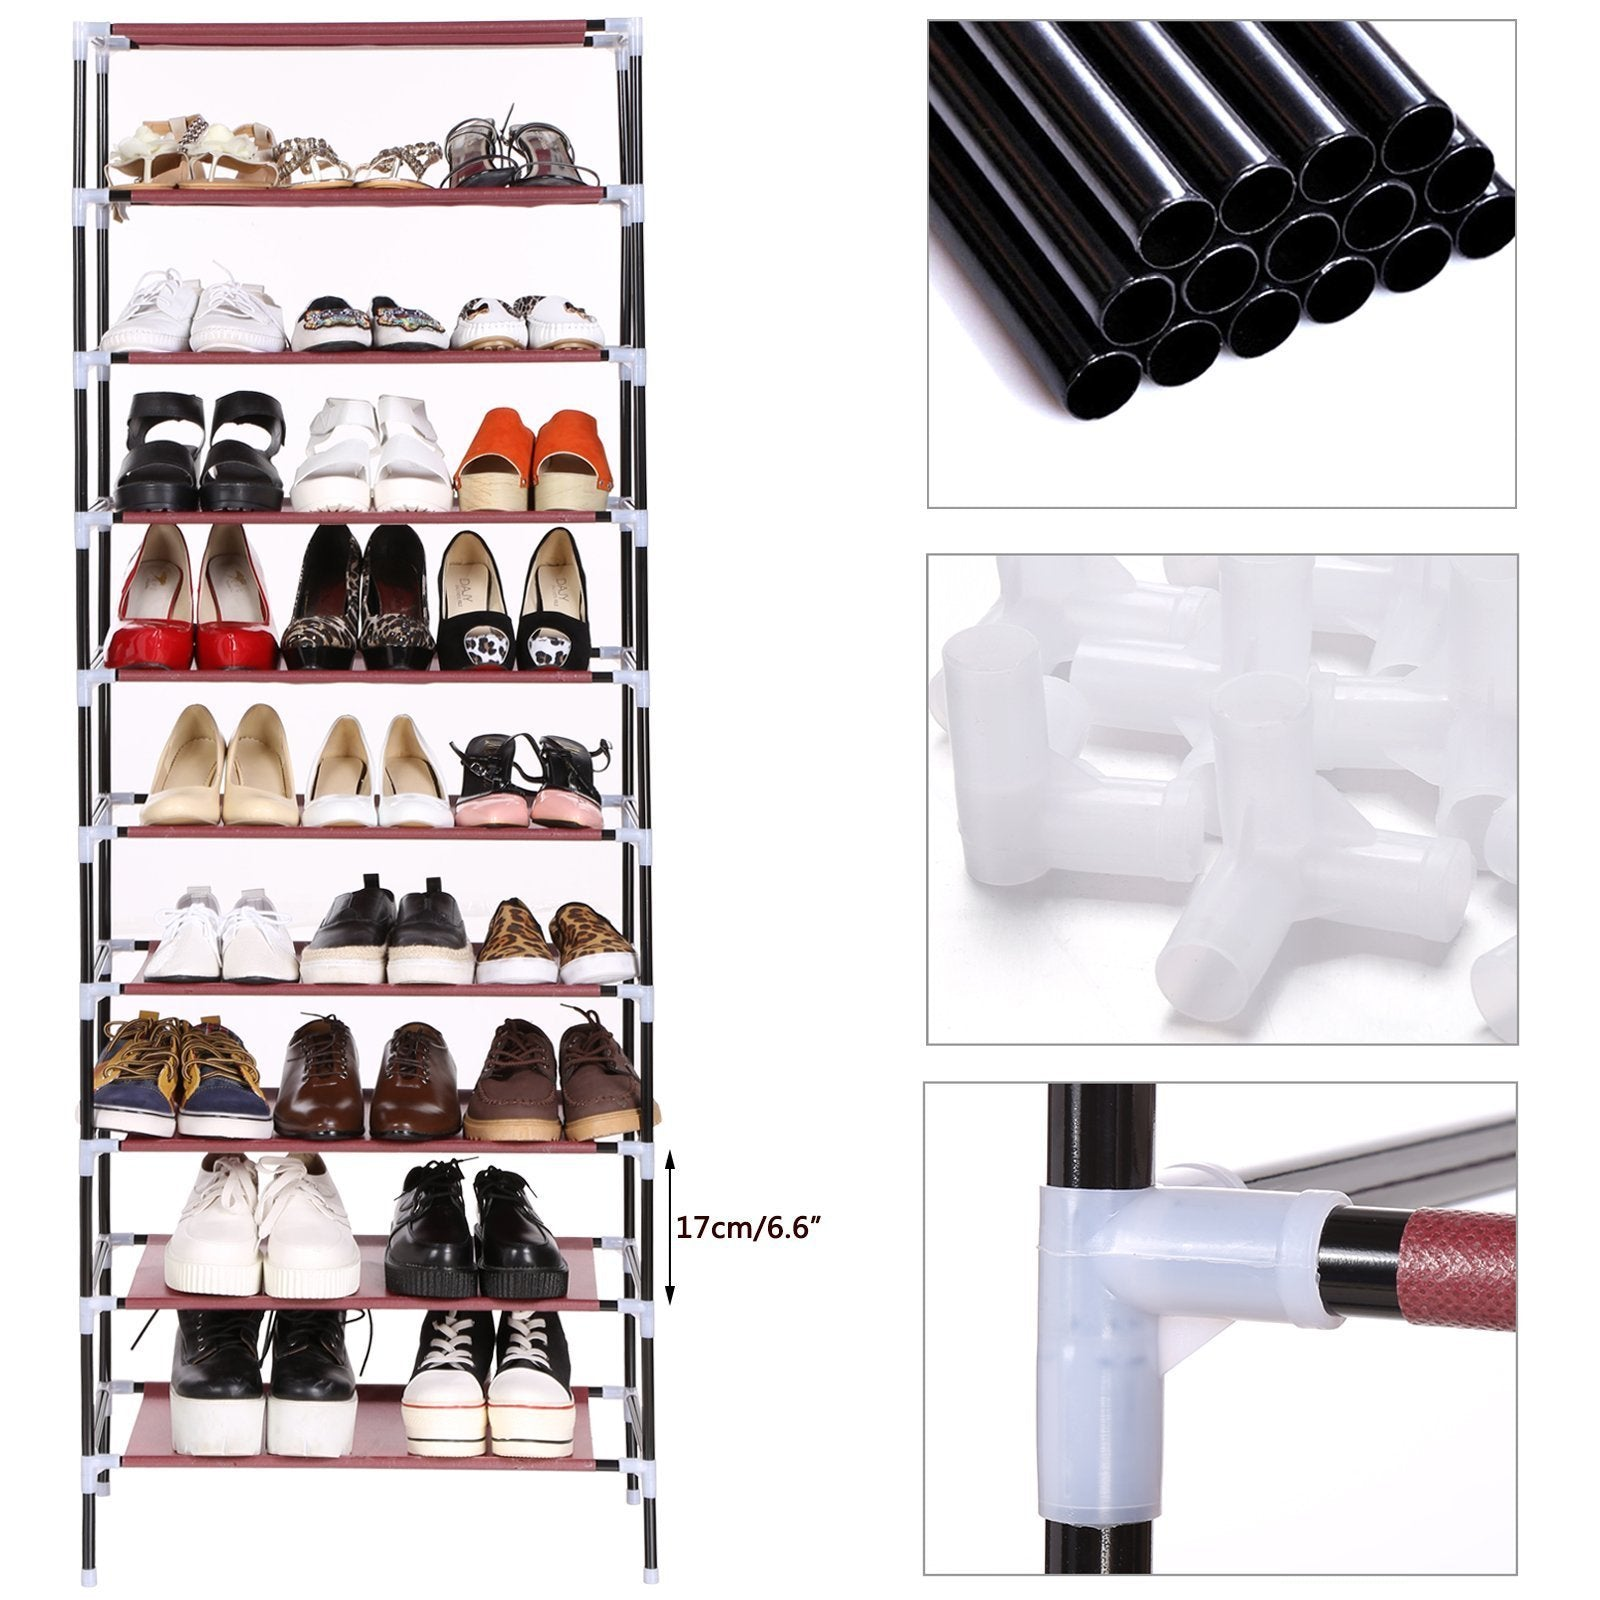 On amazon bluefringe shoe rack with dustproof cover shoe closet shoe cabinet storage organizer dustproof 27 pairs shoe cabinet multi function shelf organizer navy blue 10 tier